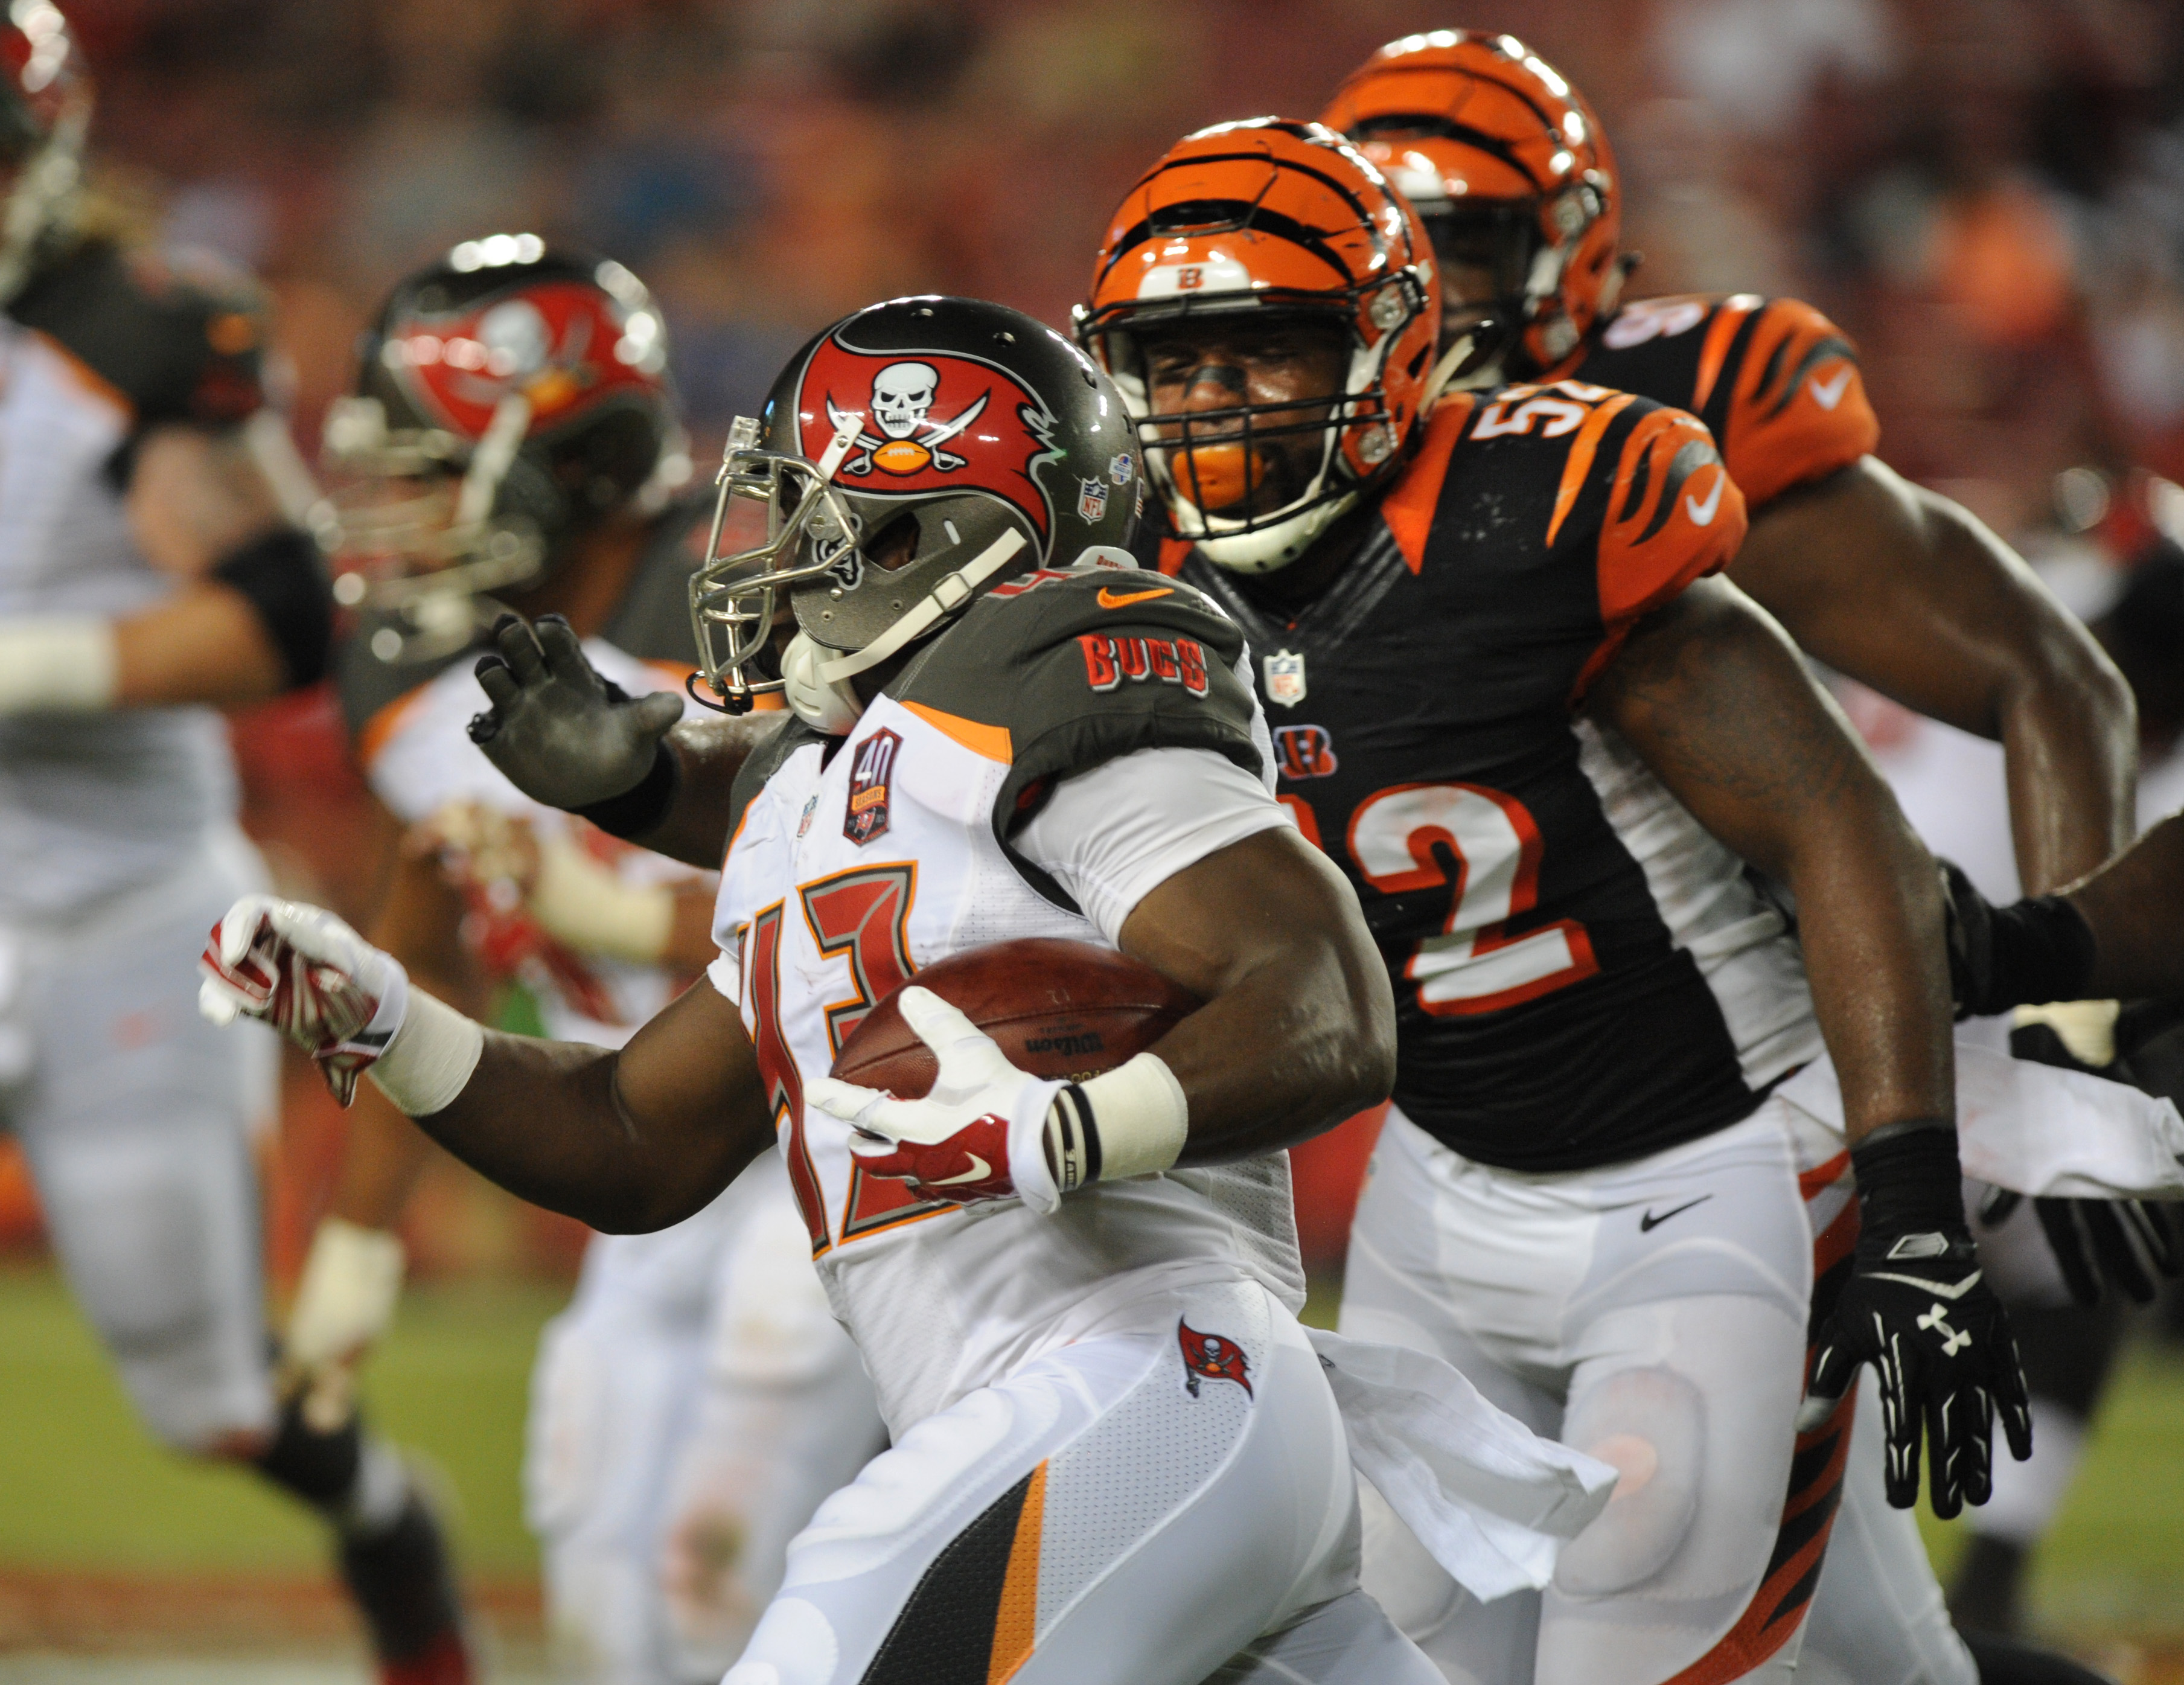 Preseason Week 1: Bengals Vs Buccaneers The Bengals Face Their First  Opponent Of The Preseason On Friday Night At Paul Brown Stadium